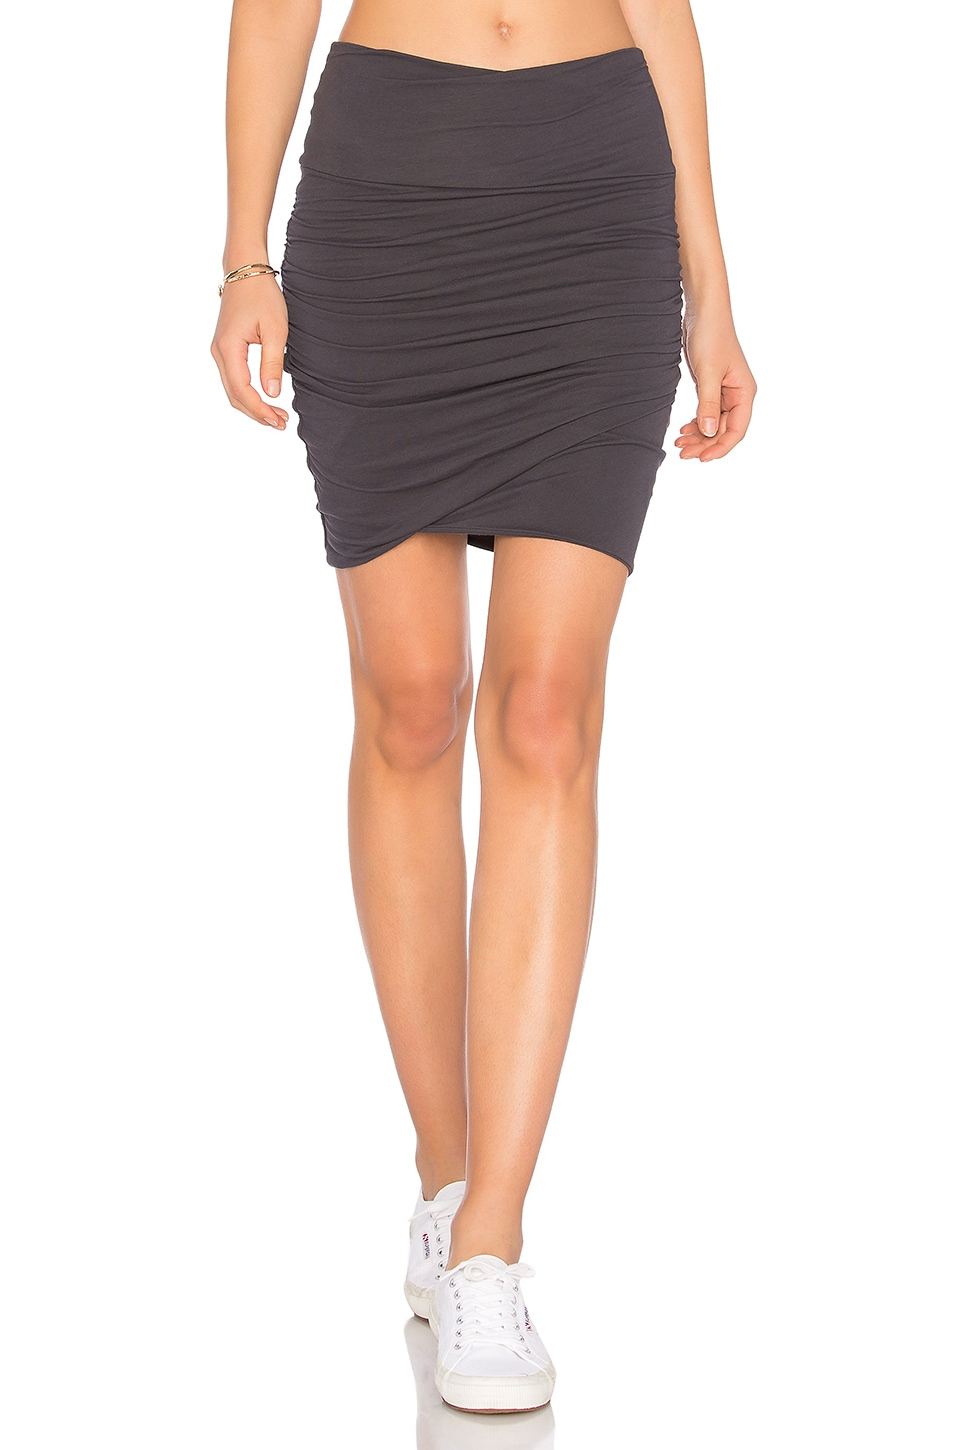 James Perse High Waist Wrap Skirt in Indian Ink